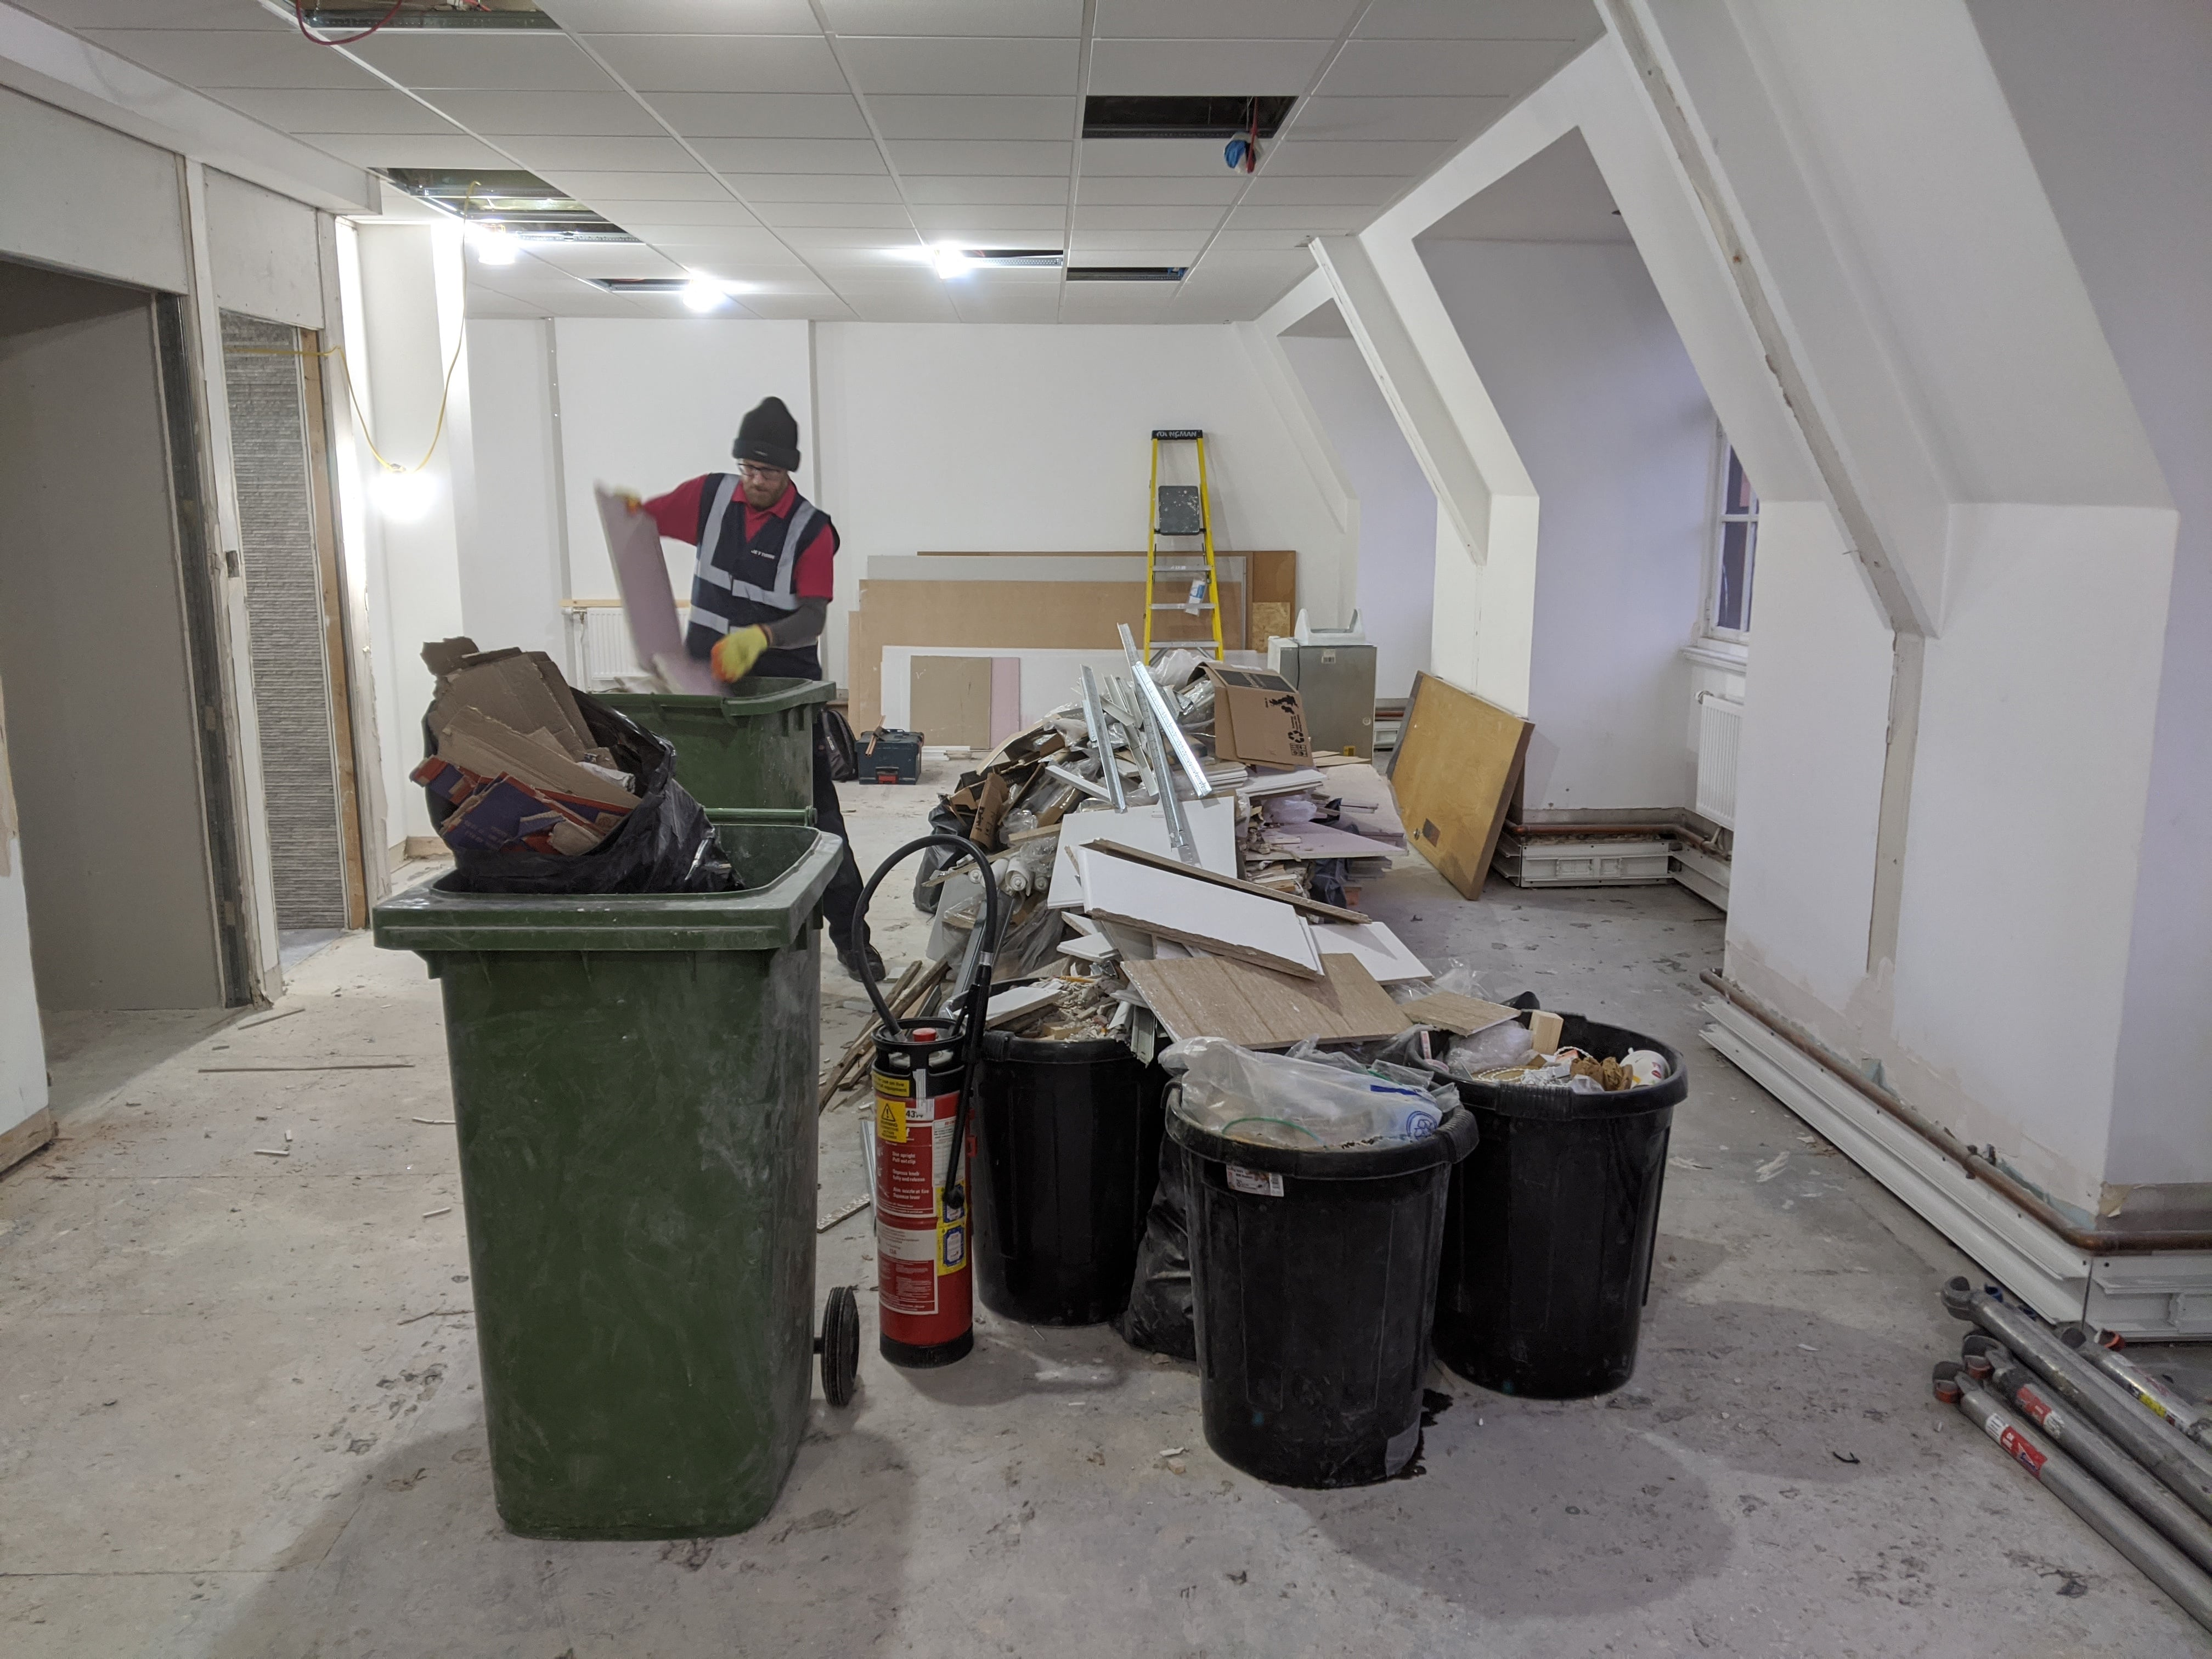 Shop fitters waste